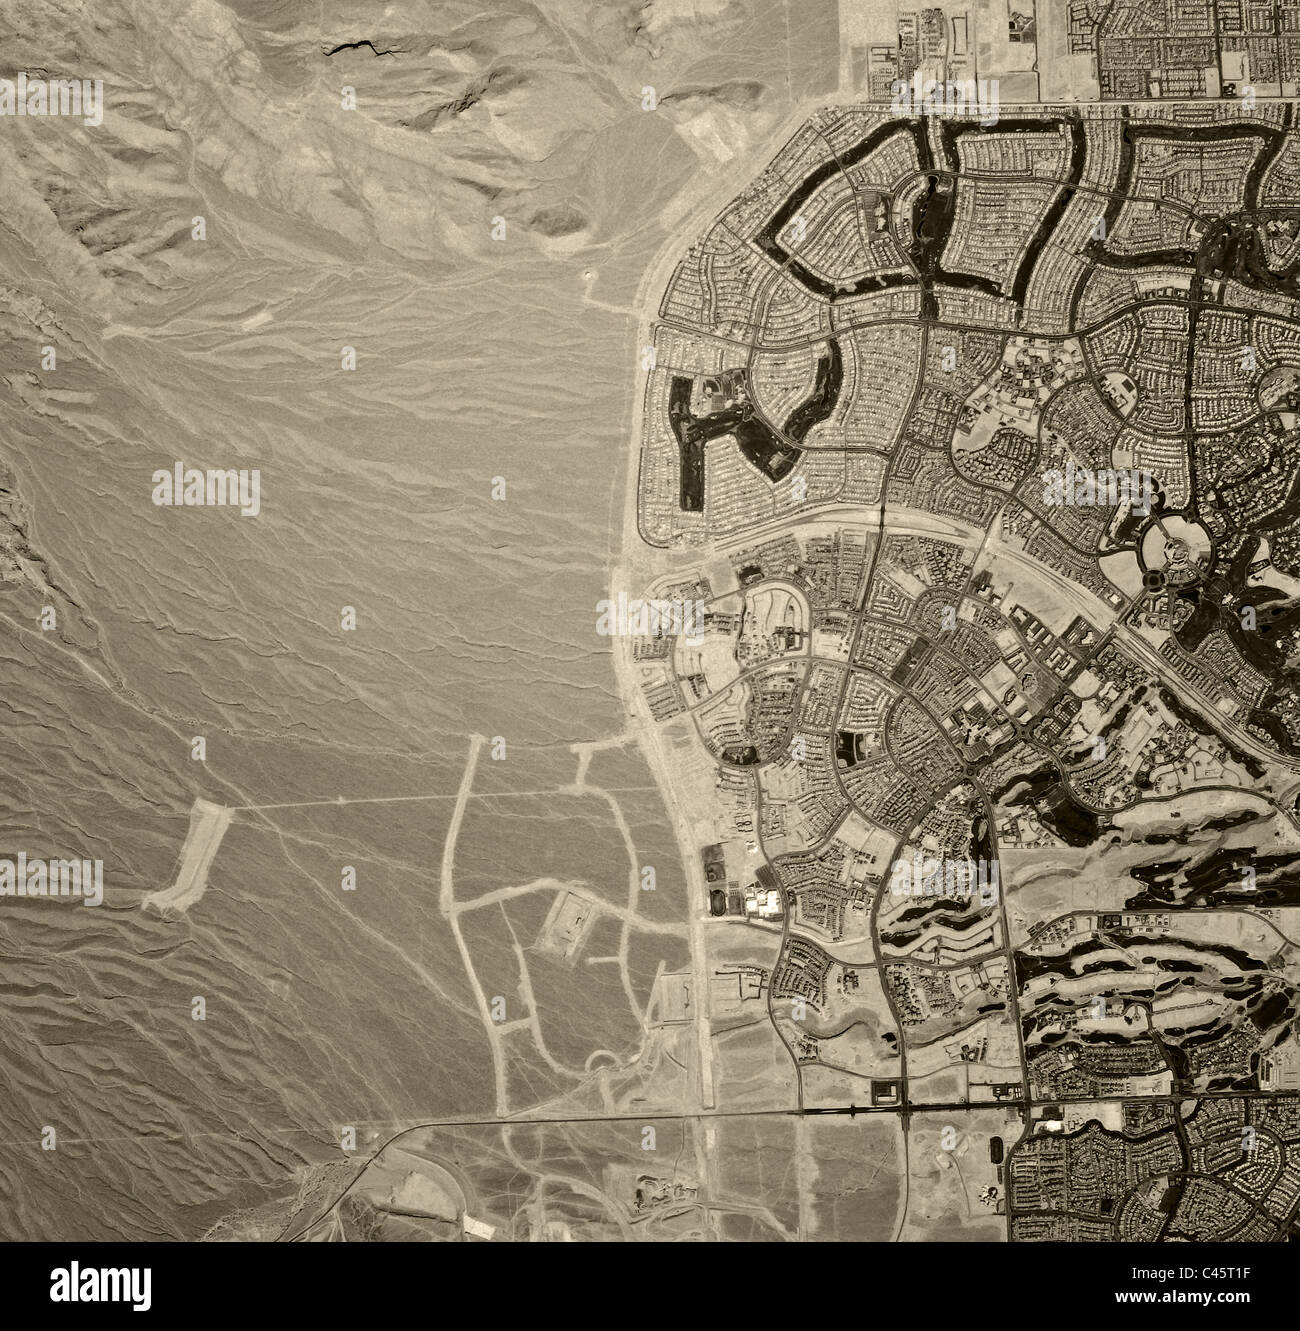 Historical Aerial Map View Real Estate Development